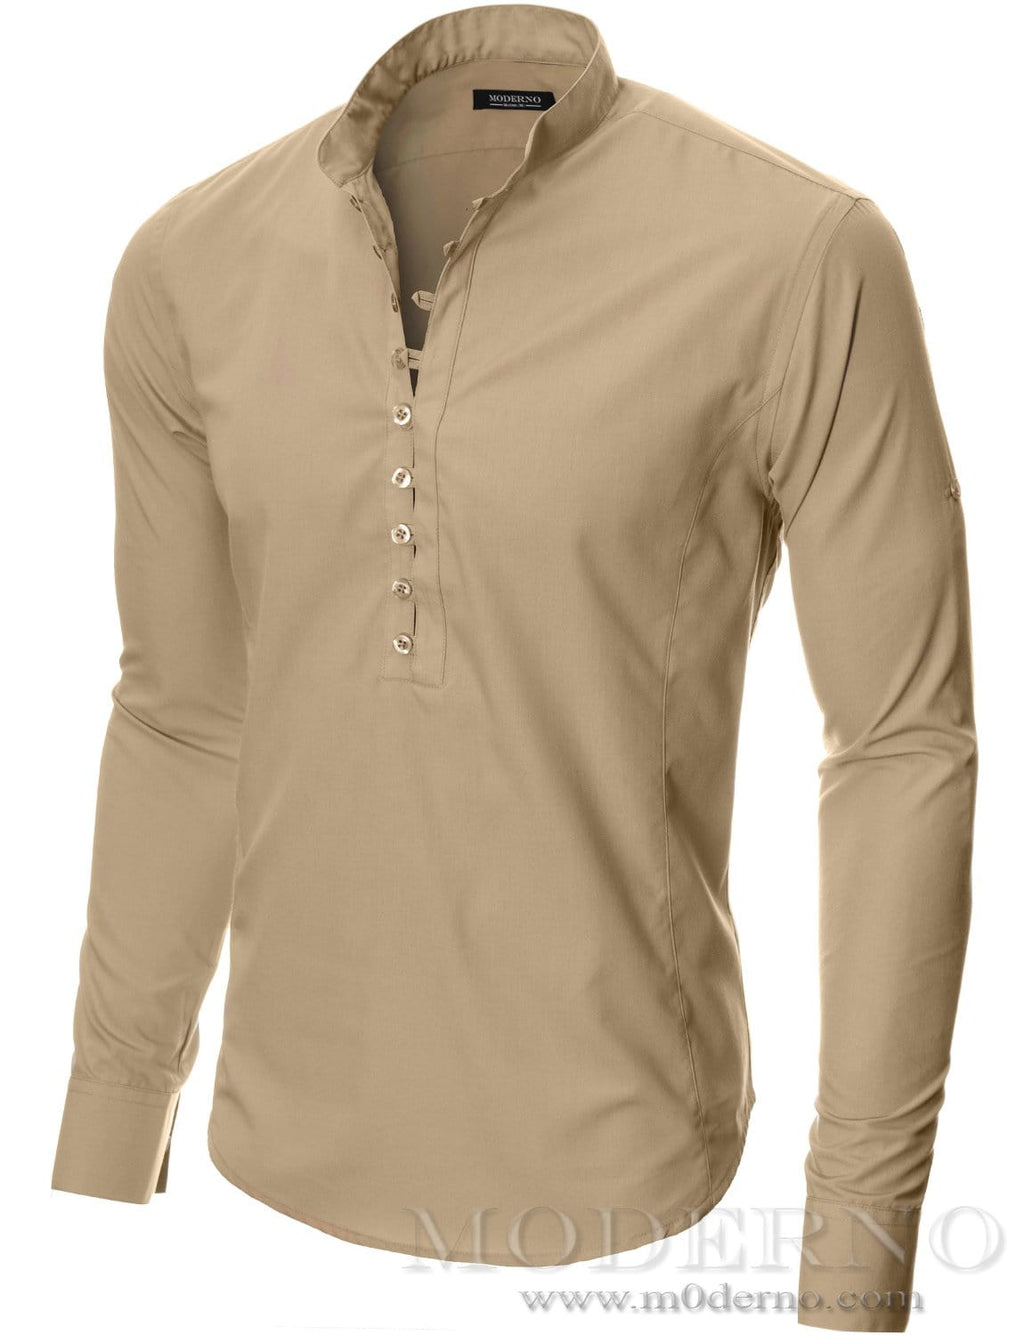 Mens button-down shirt beige (MOD1431LS) - MODERNO